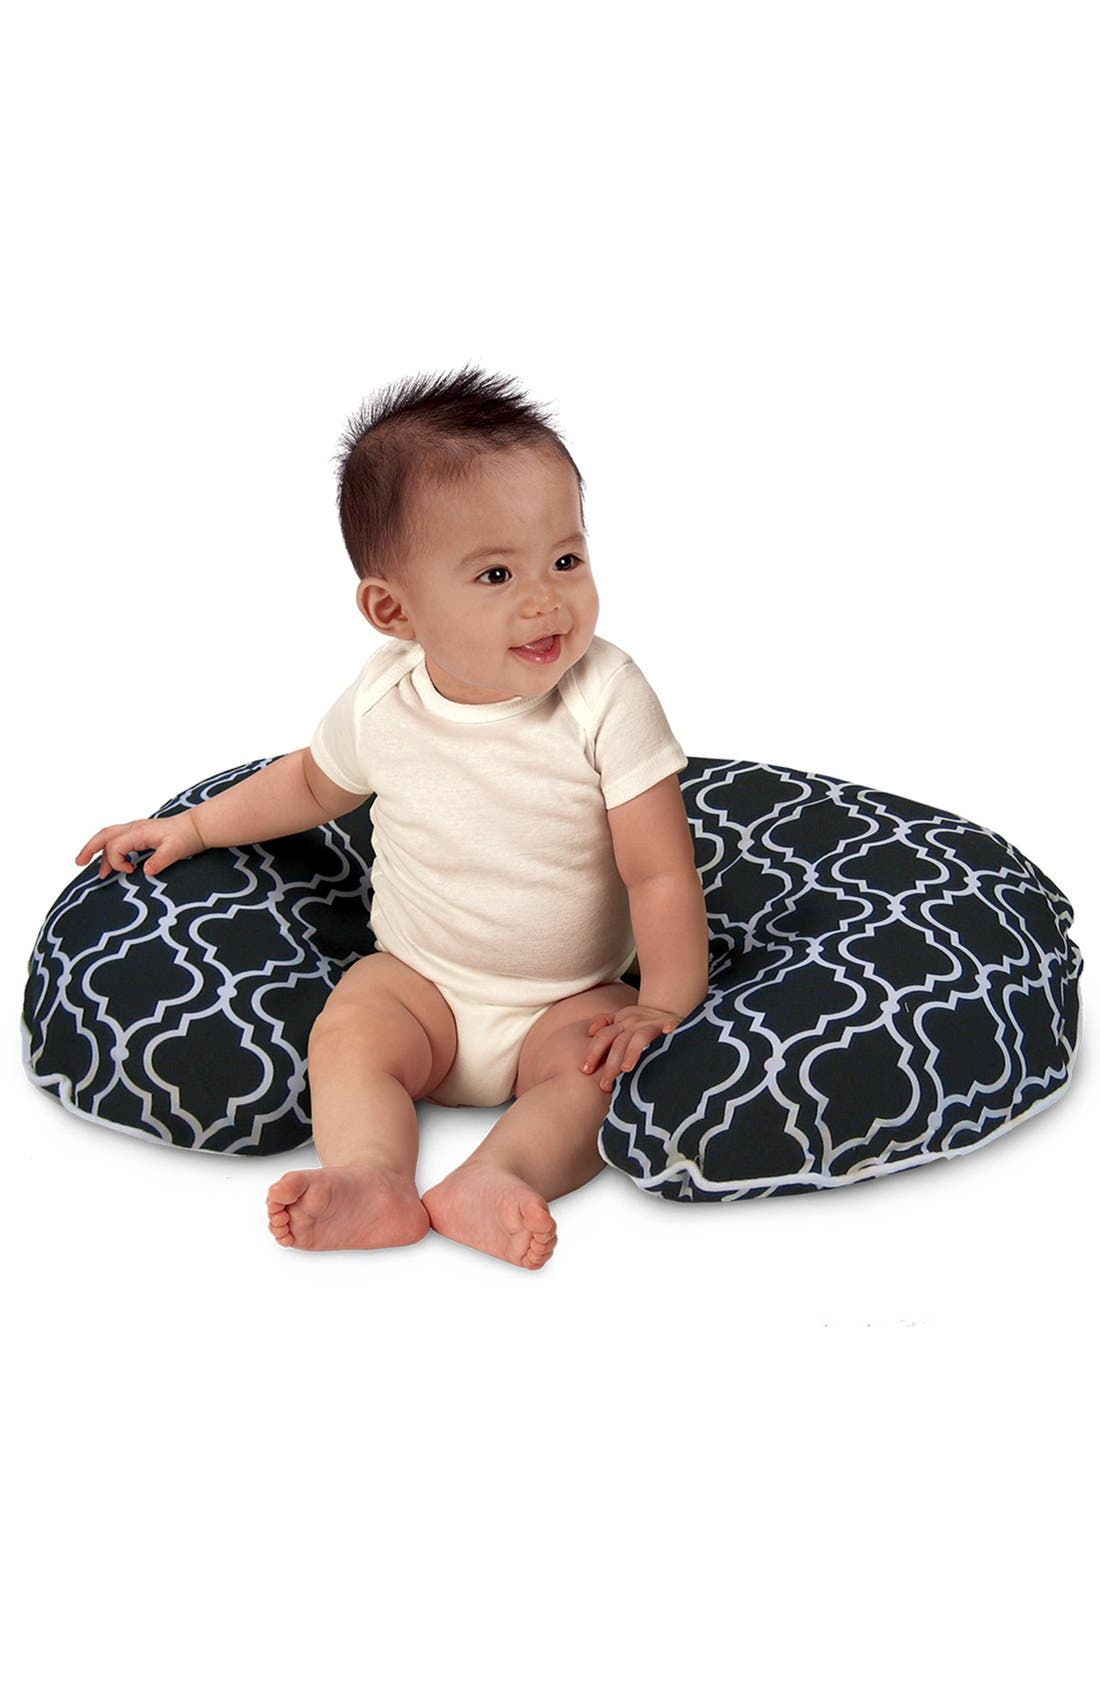 Alternate Image 1 Selected - Boppy 'Seville' Pillow & Slipcover